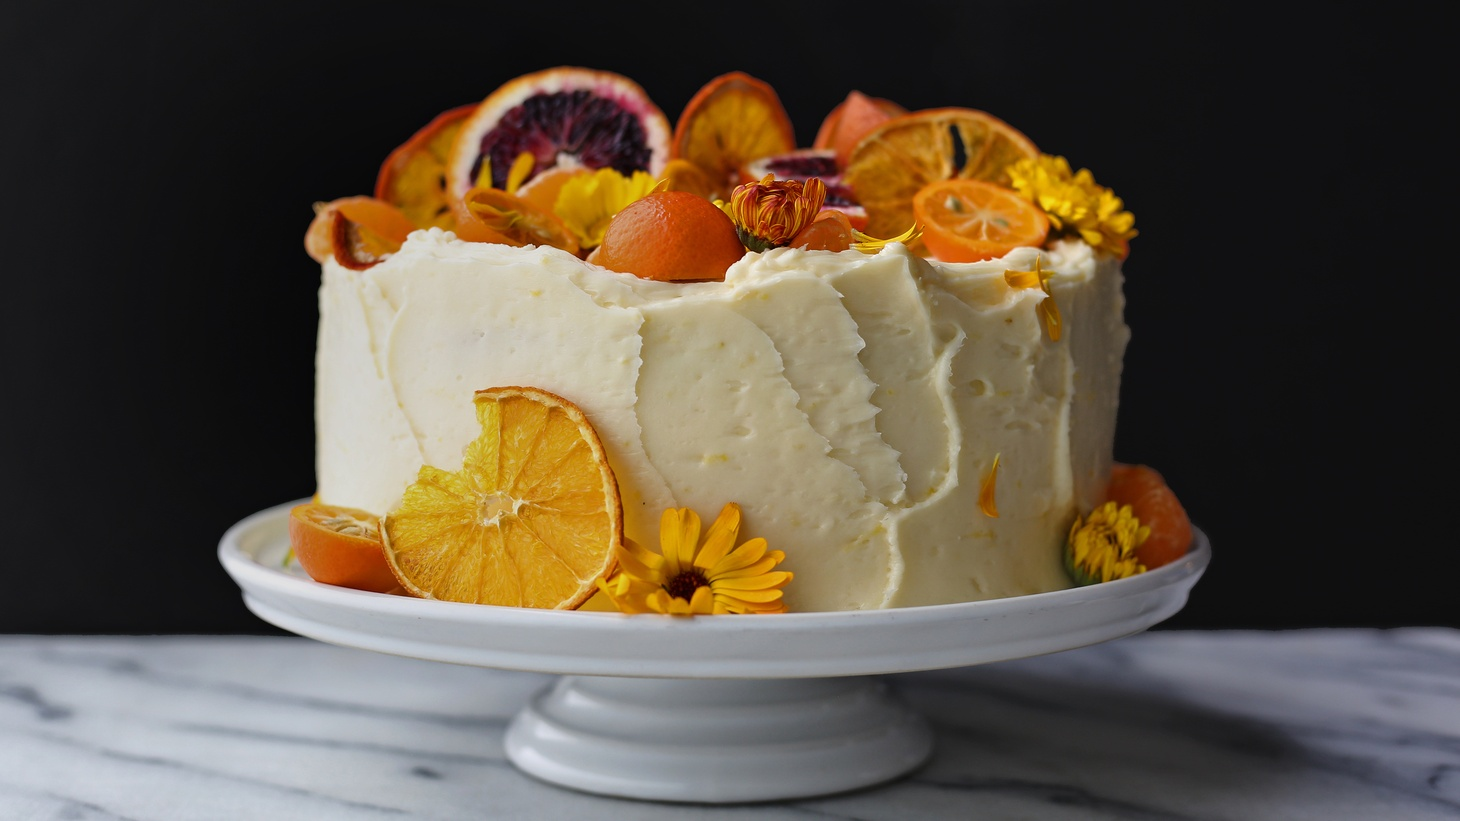 Lemon cake layered with tart lemon curd, covered in white chocolate buttercream. Topped with a bountiful arrangement of fresh seasonal flowers and citrus.